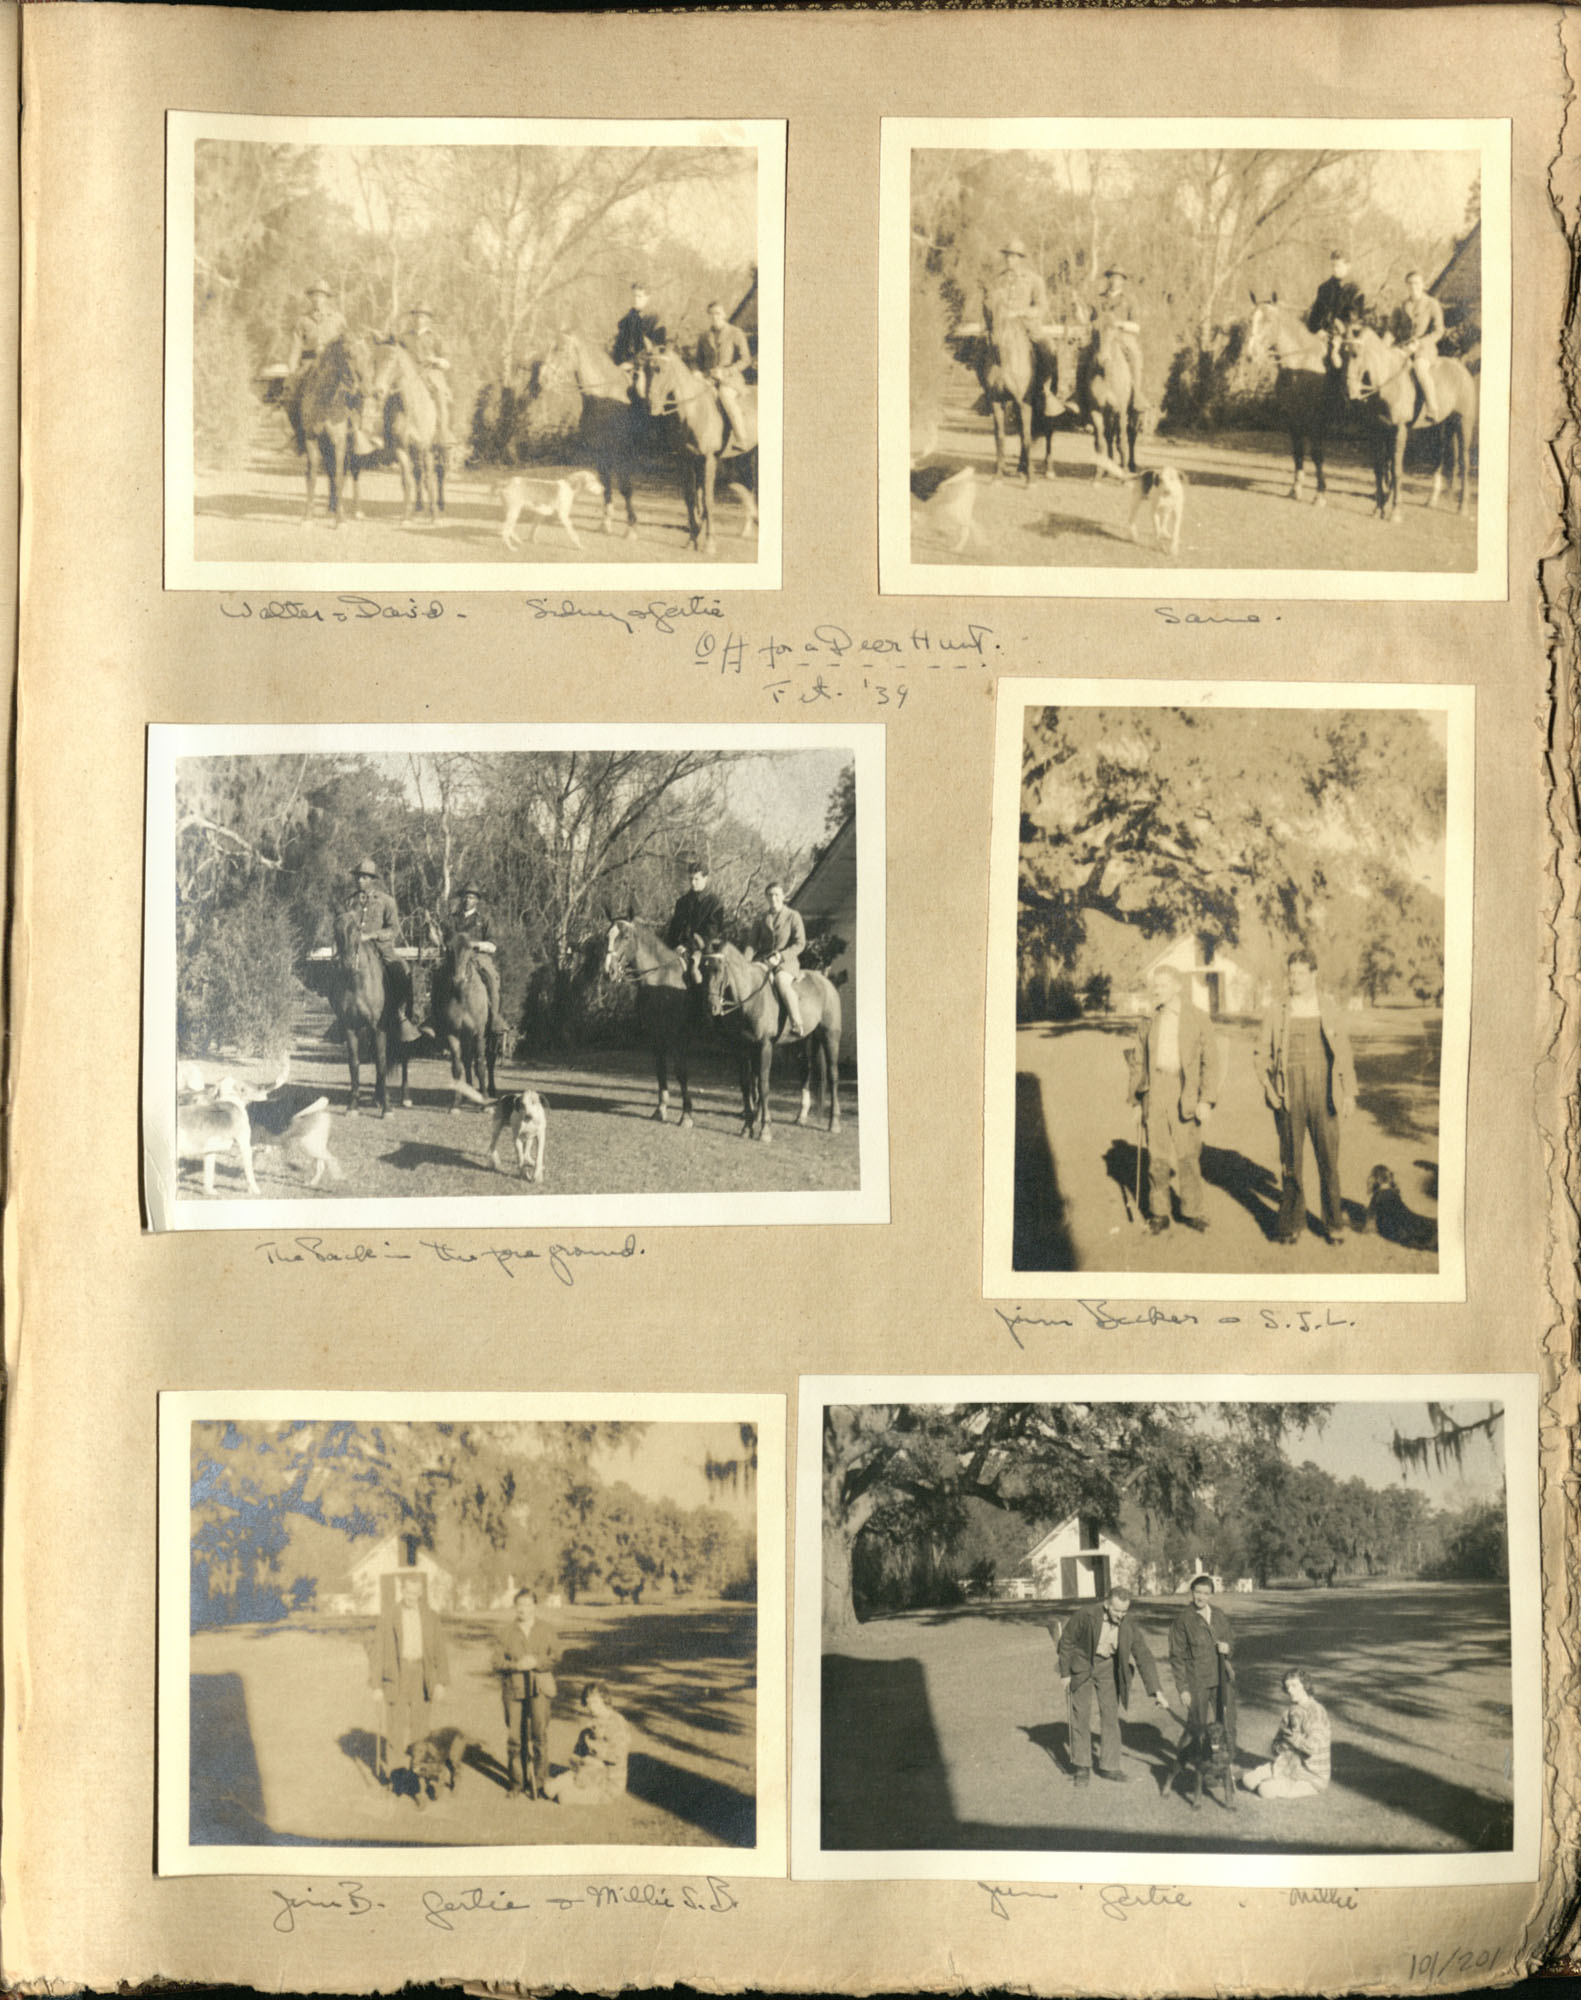 Early Medway and travels album, 1929-1937, page 101